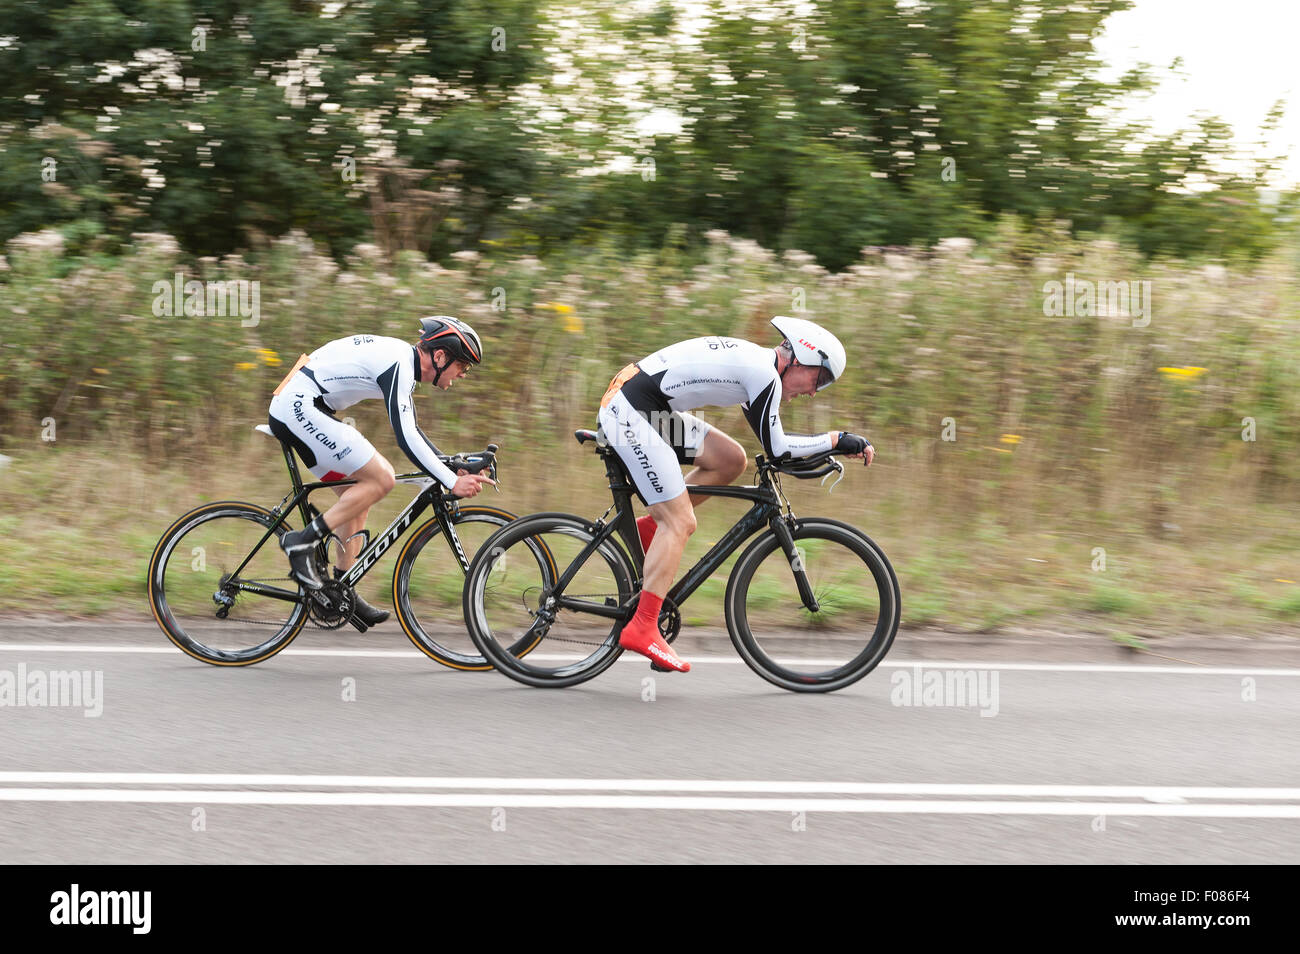 TT time trial cycling pairs on Brands Hatch road dedicated gear equipment bikes and streamlined on very fast road summer evening Stock Photo